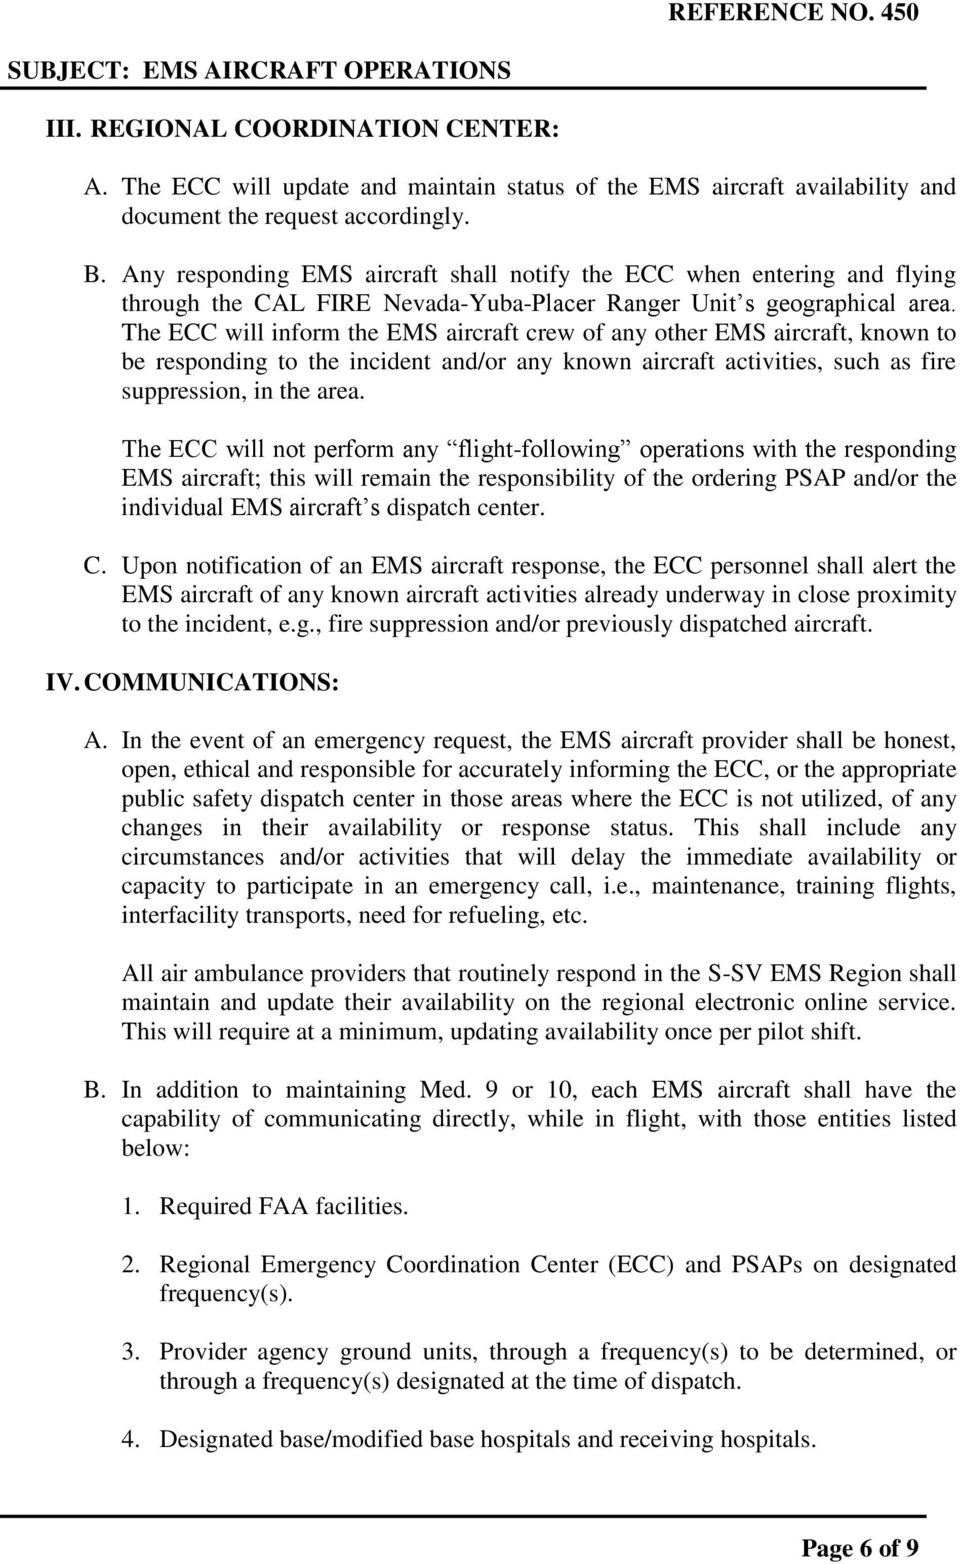 The ECC will inform the EMS aircraft crew of any other EMS aircraft, known to be responding to the incident and/or any known aircraft activities, such as fire suppression, in the area.